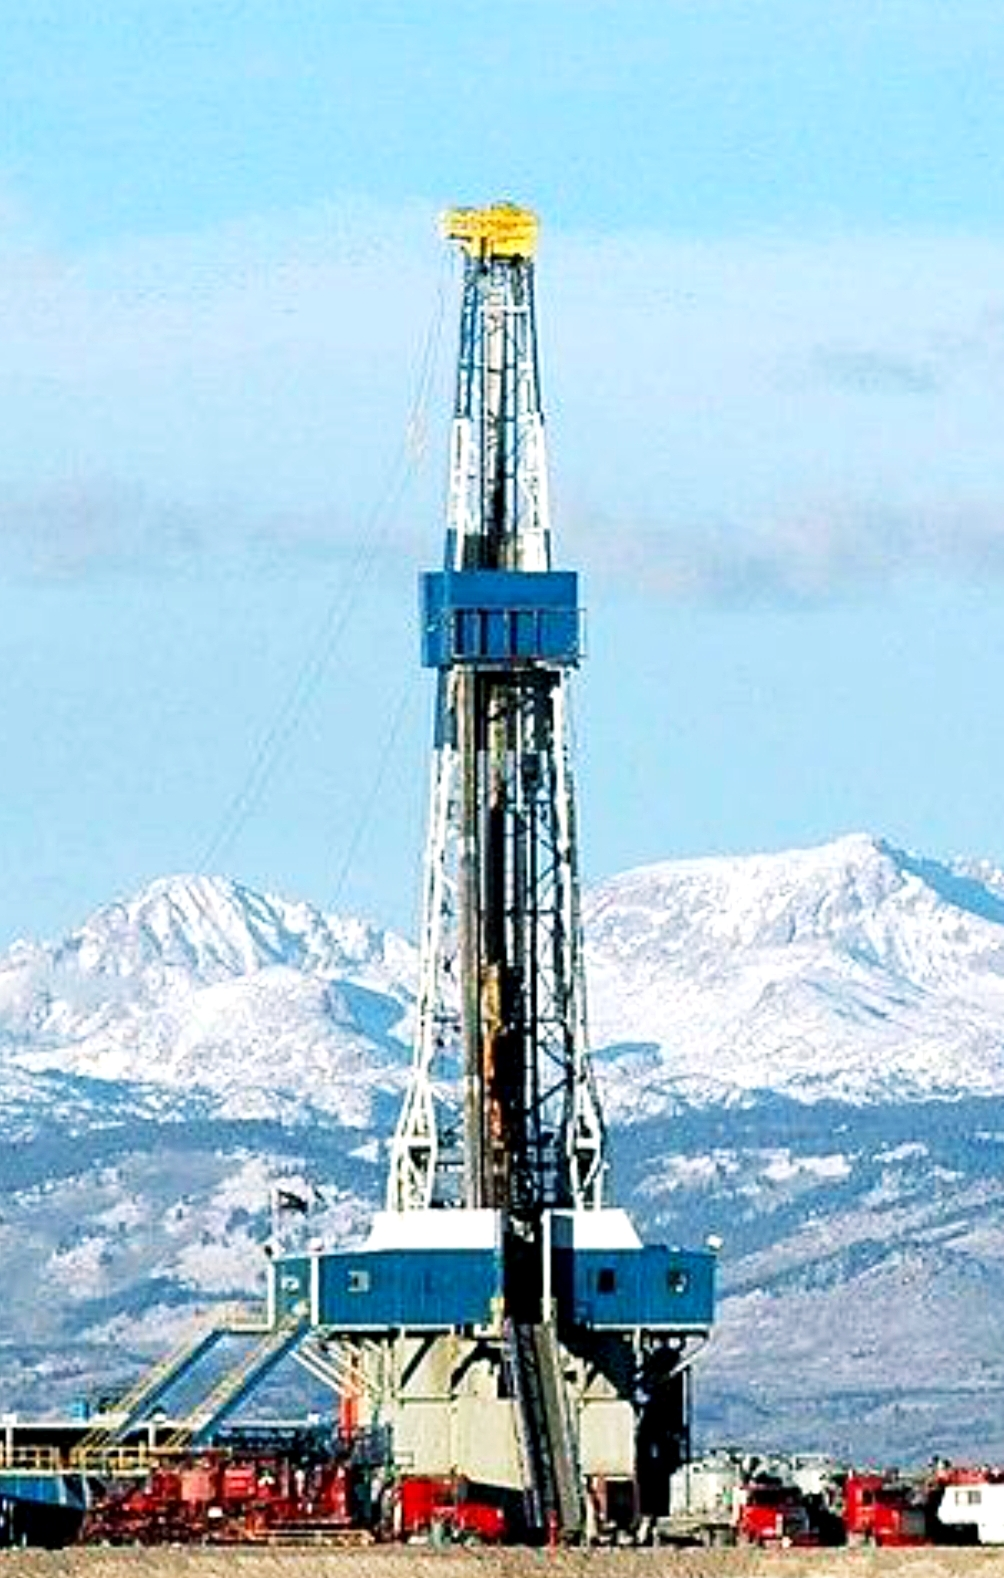 Oil Rig Drilling With Mountains In The Background